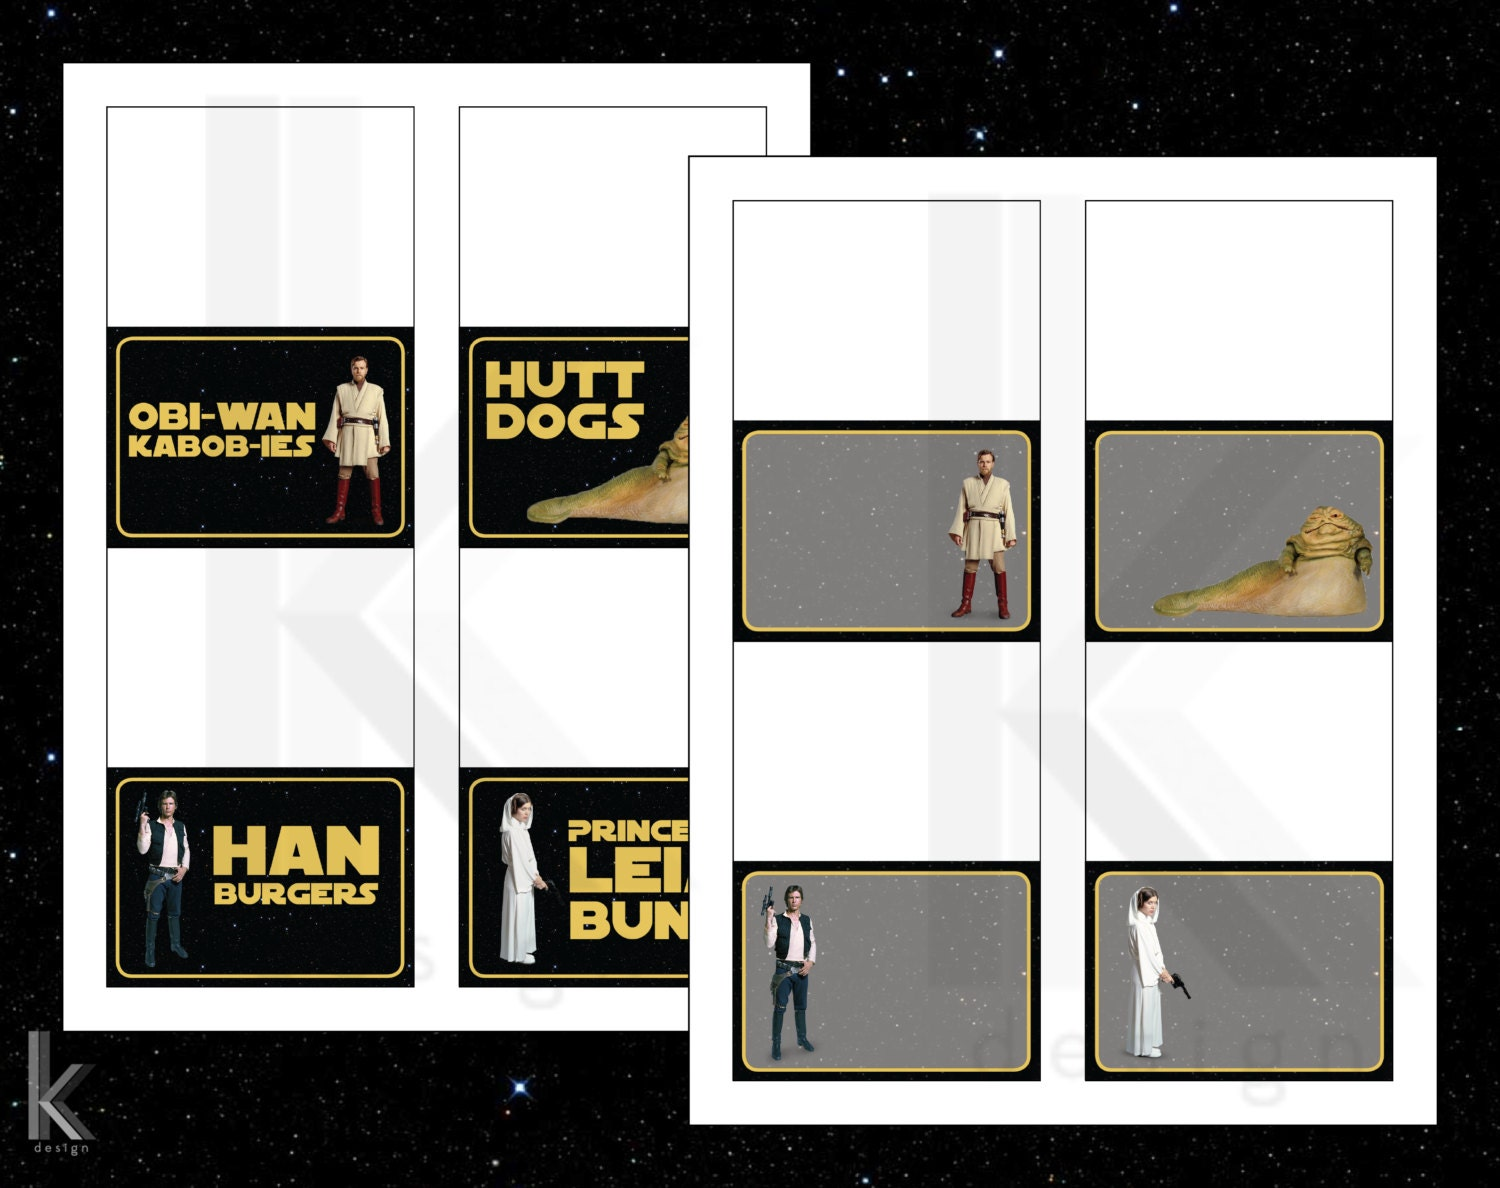 Star Wars Themed Party Food Label Tent Cards Printable File